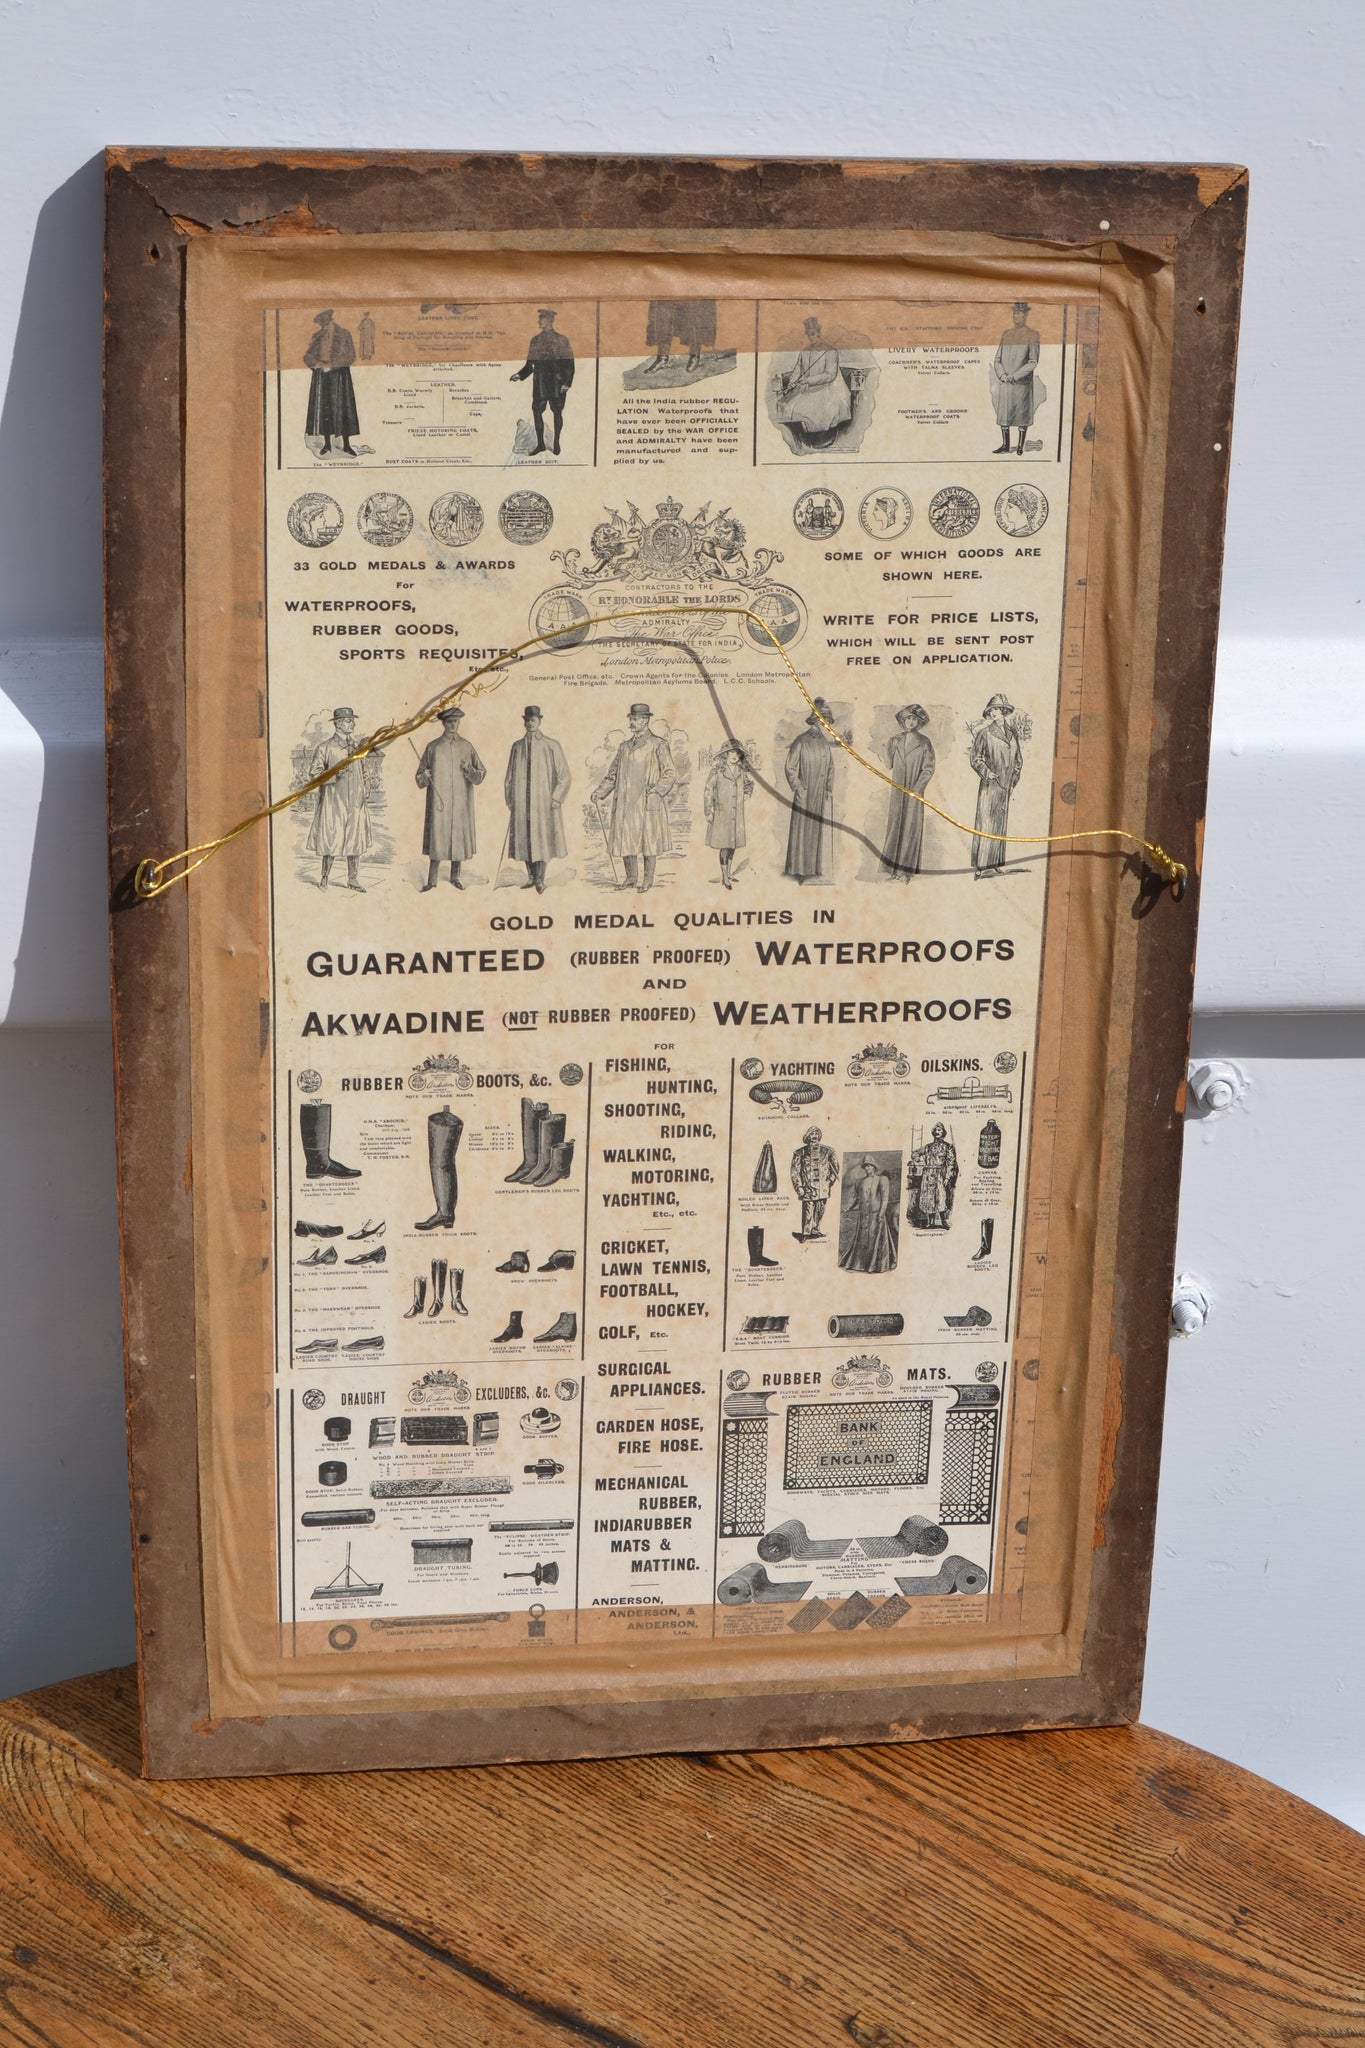 A framed Anderson Overcoats showcard advertisement